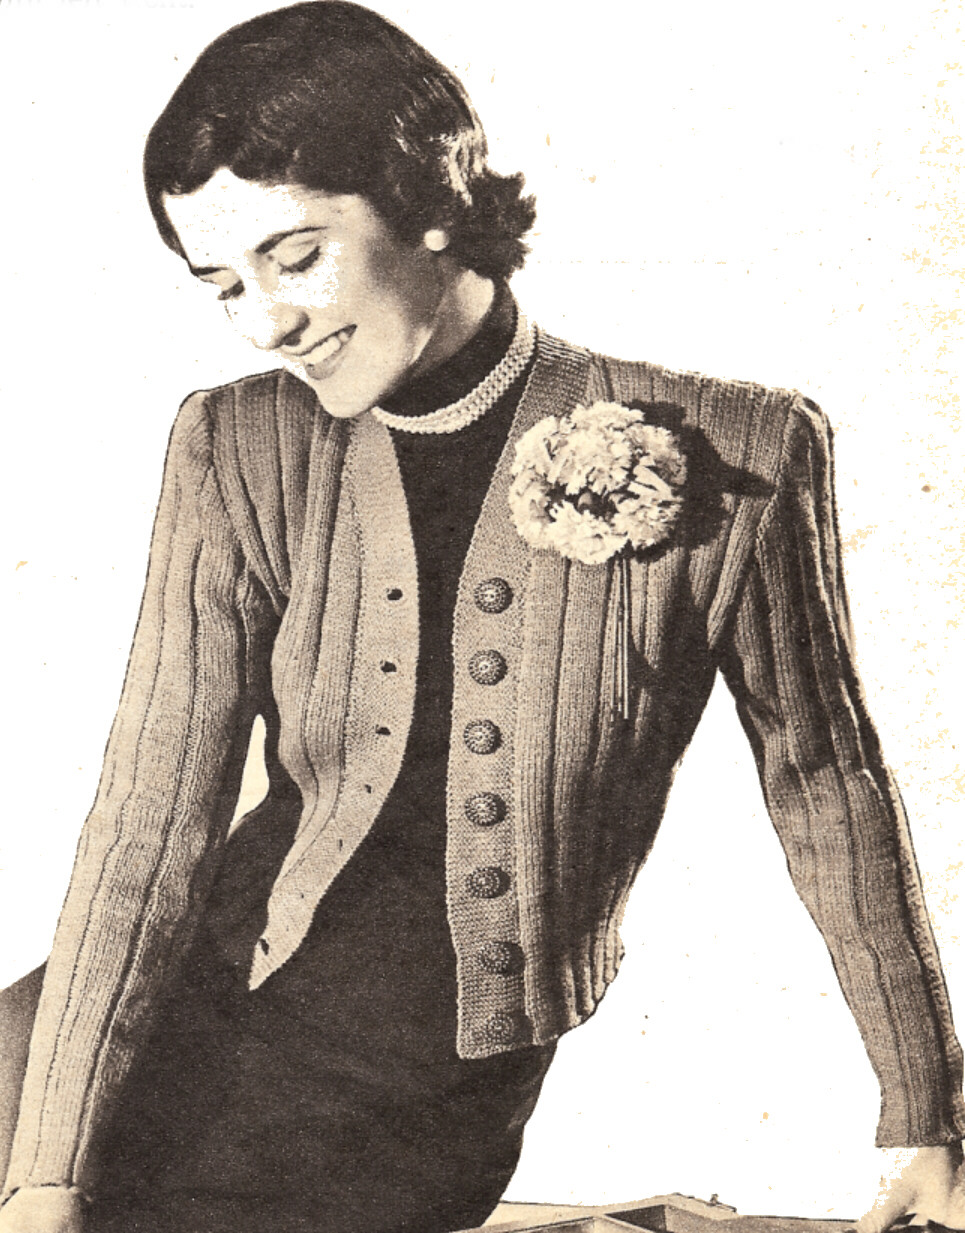 Knitting Patterns For Jackets Cardigan : Vintage Knitting Pattern to Make Knit Short Cardigan Jacket Sweater